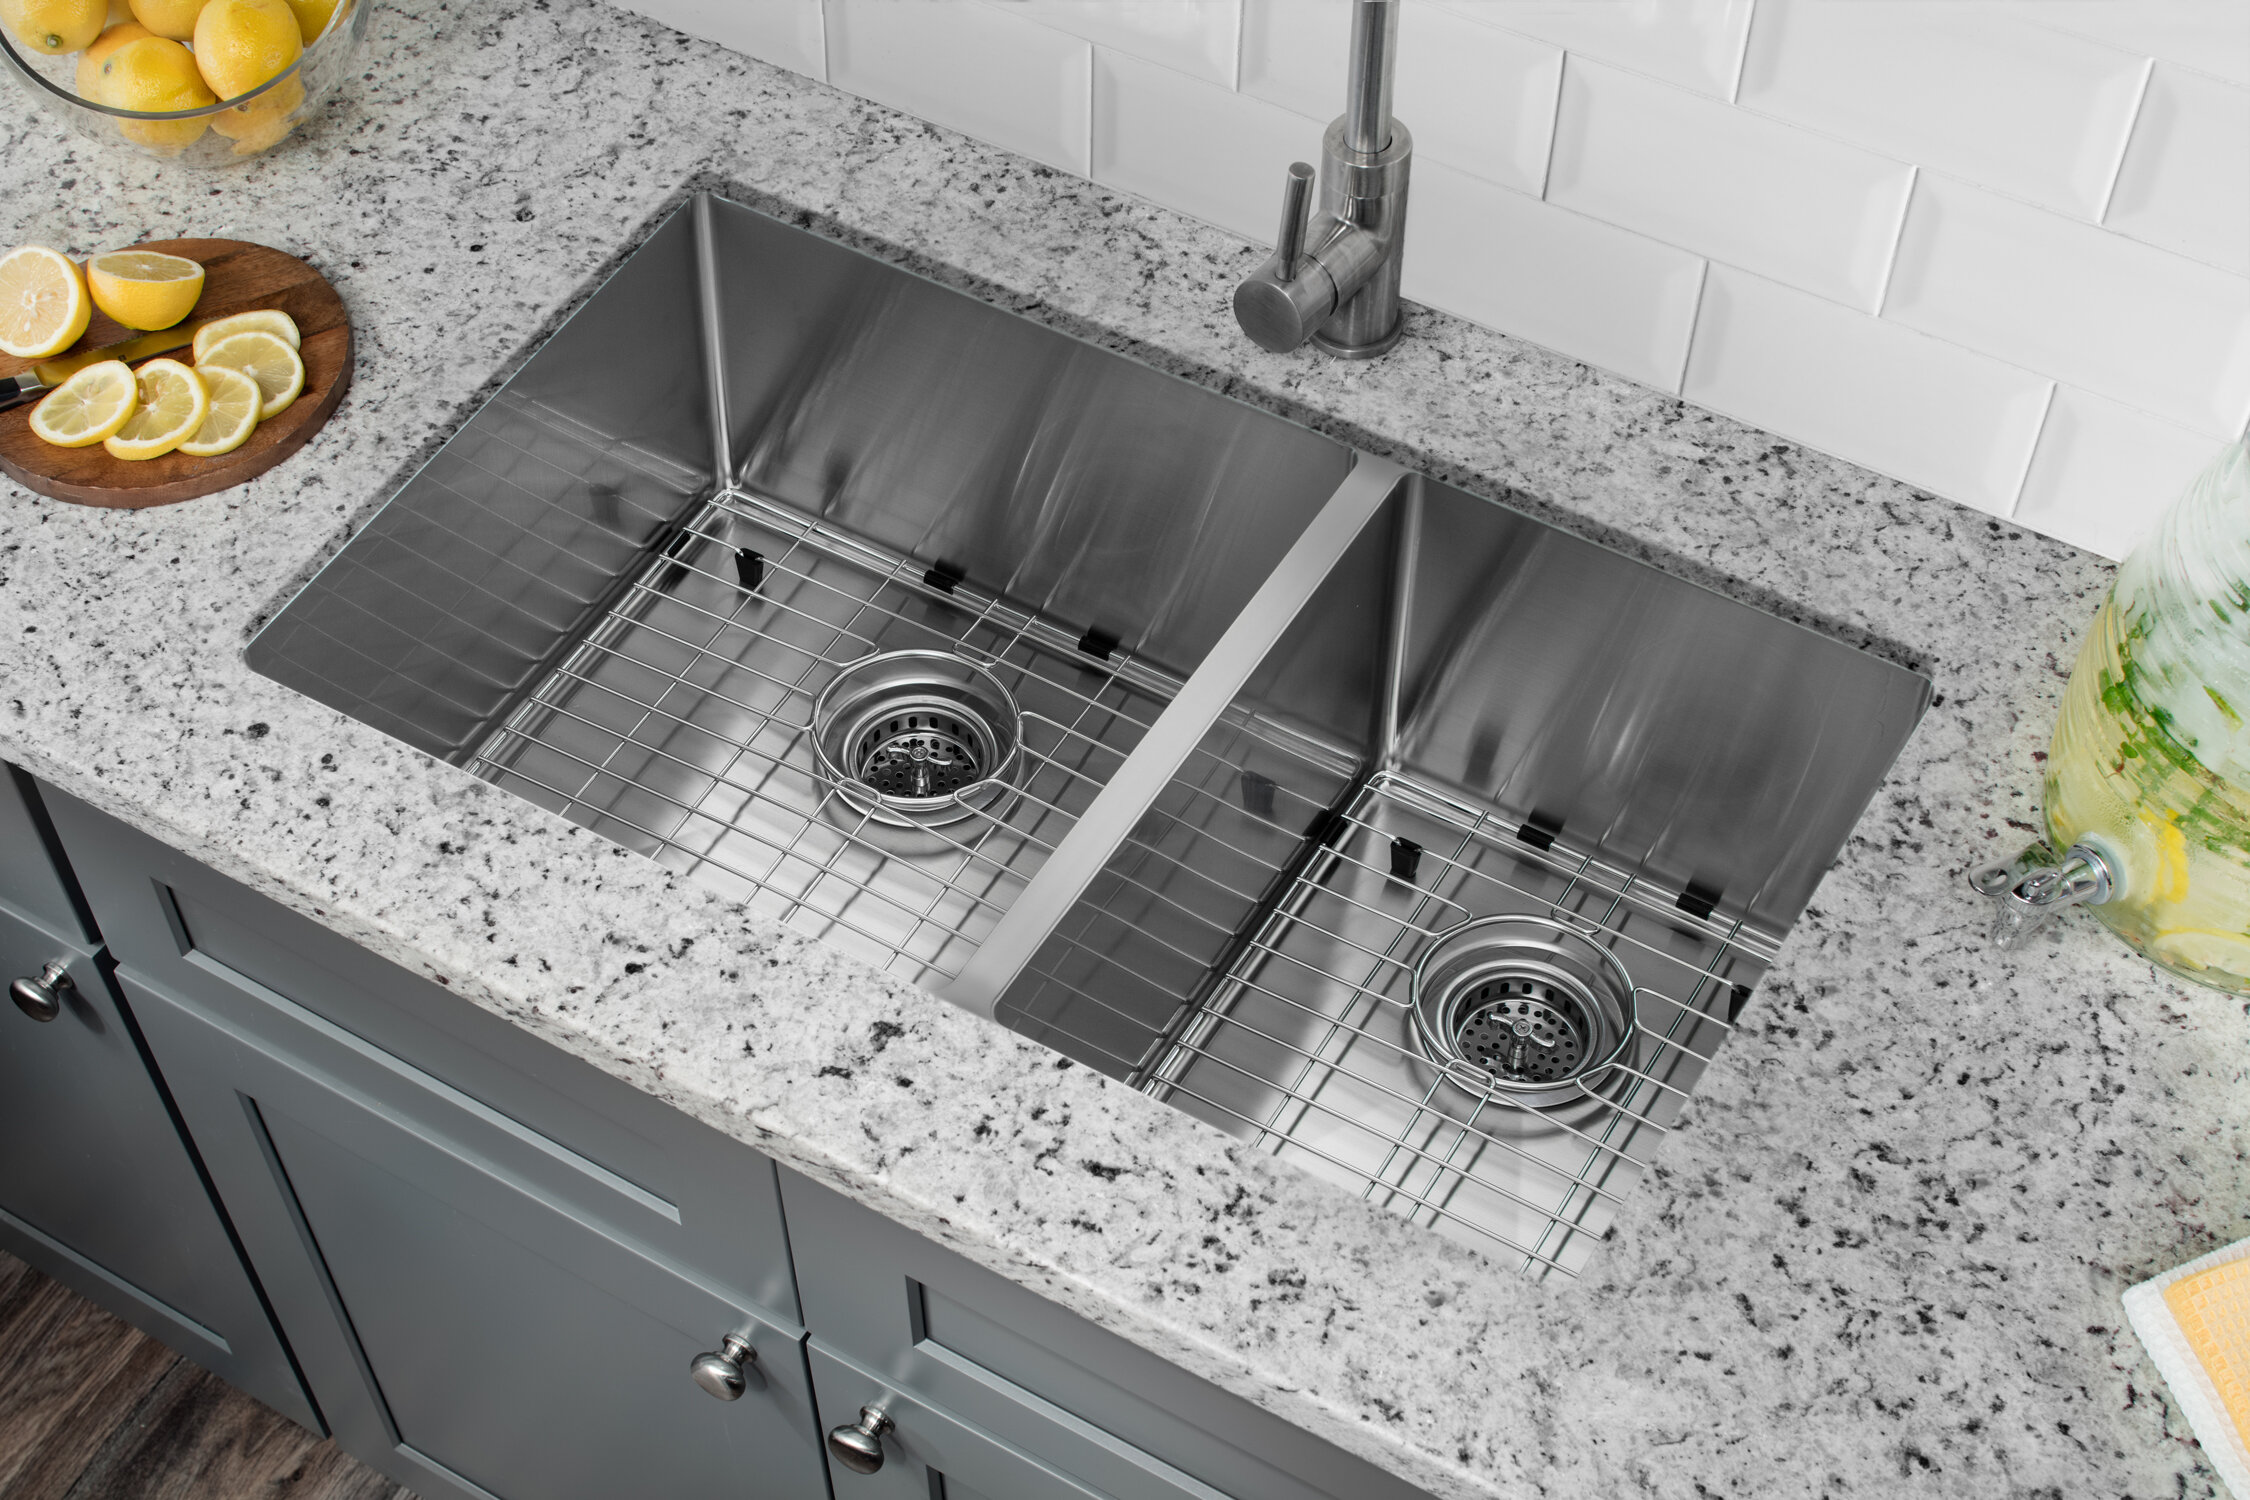 Double Bowl Stainless Steel Kitchen Sink.Radius 16 Gauge Stainless Steel 32 X 19 60 40 Double Bowl Undermount Kitchen Sink